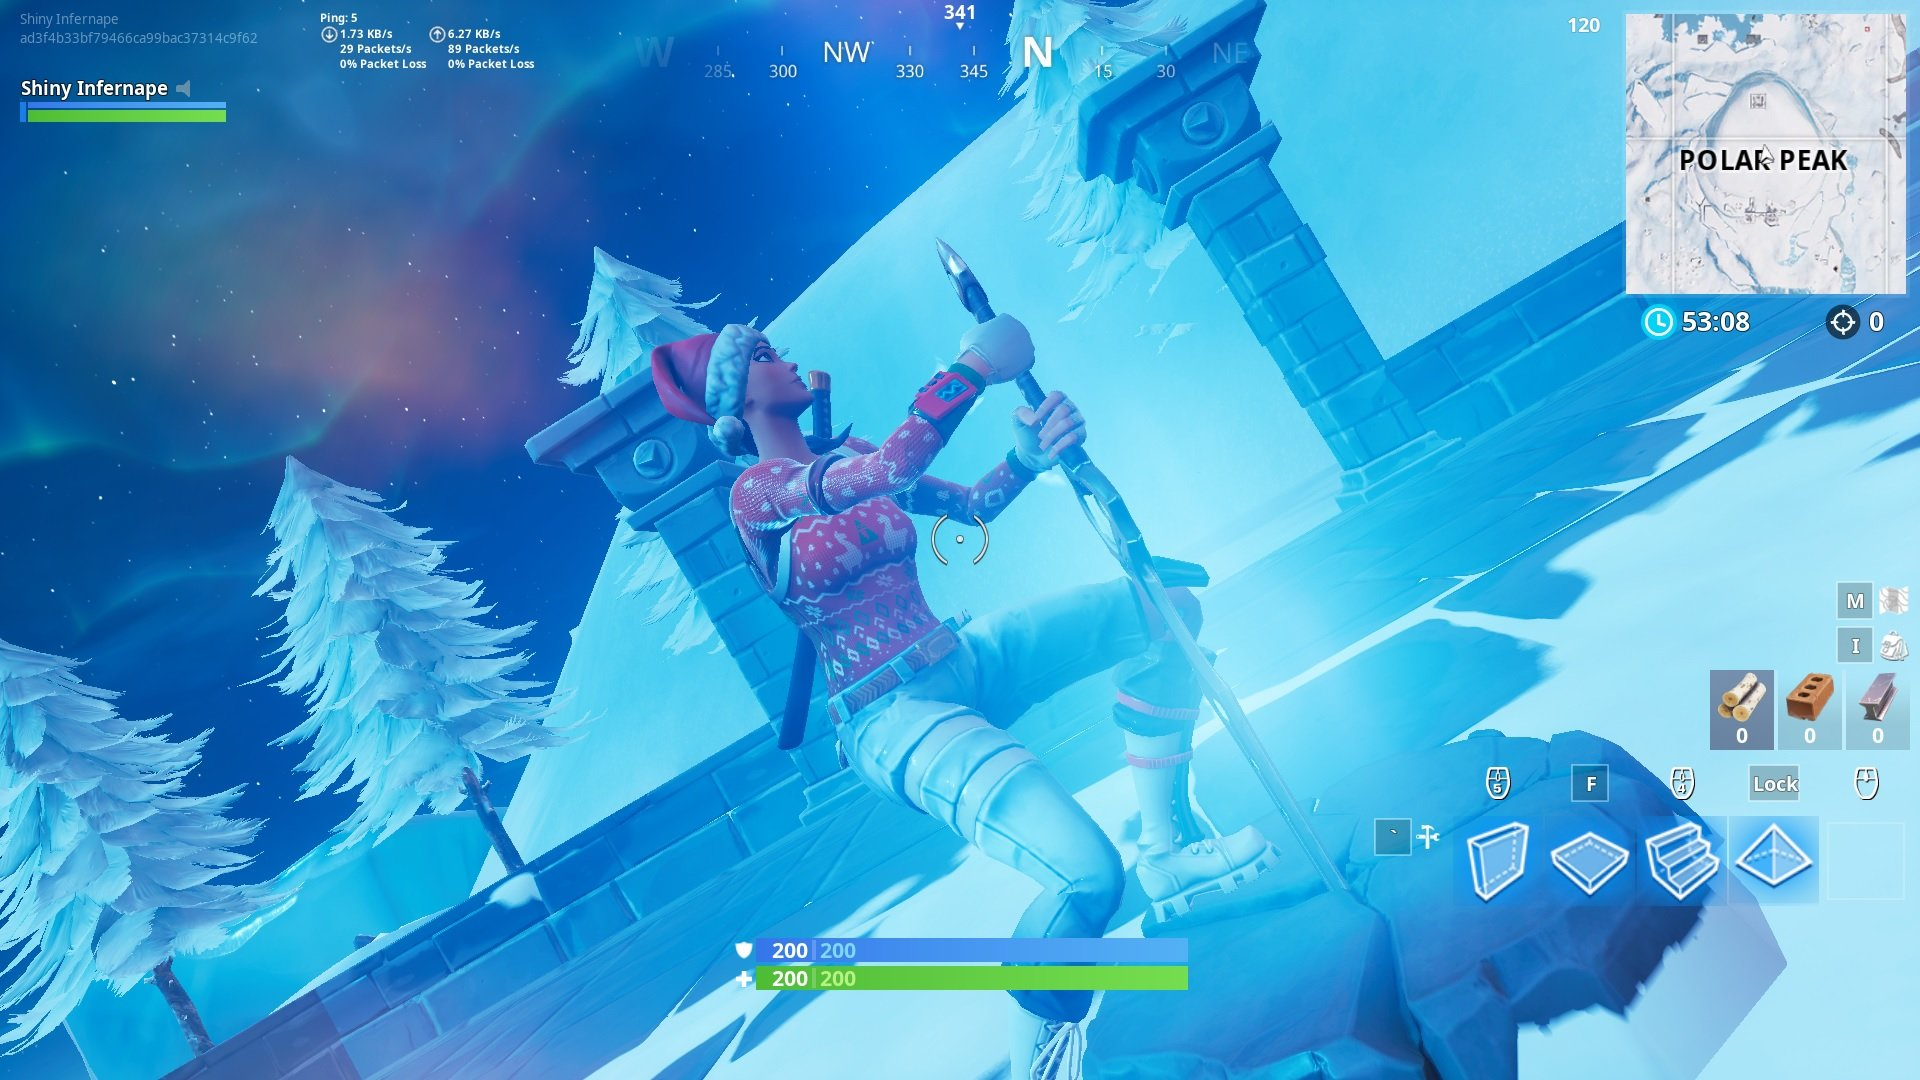 infinity blade fortnite nerf update version 7.10 patch notes